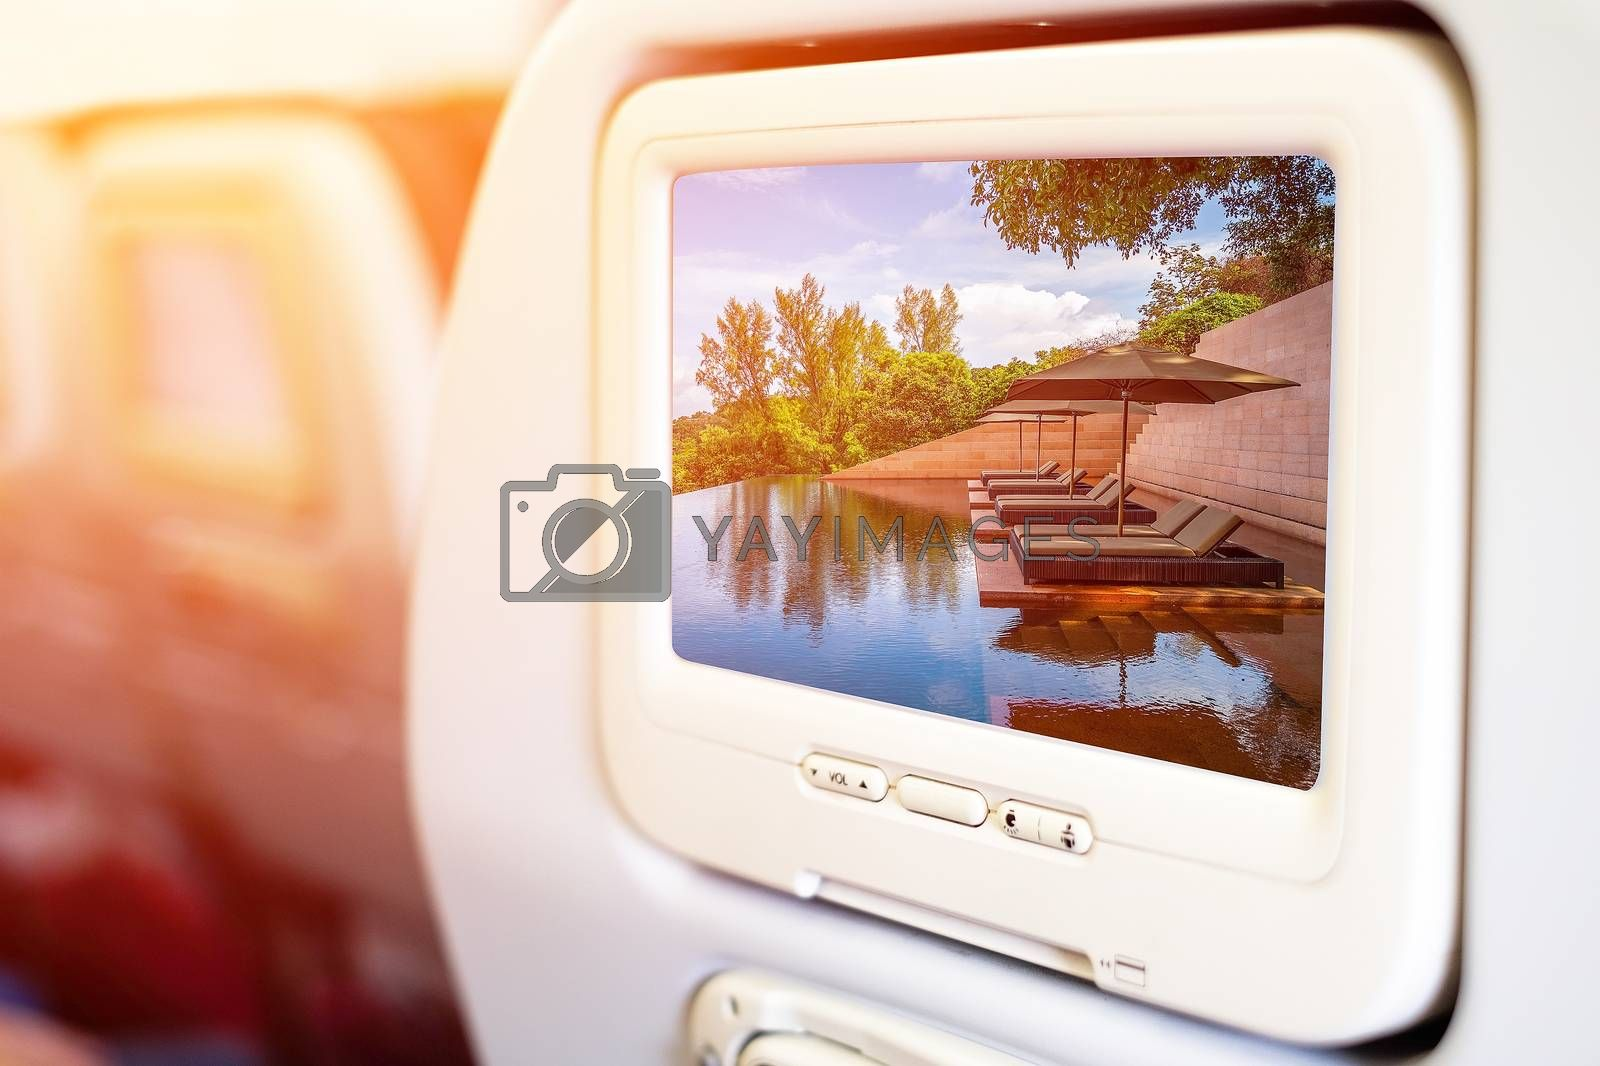 Aircraft monitor in passenger seat on beach pool background